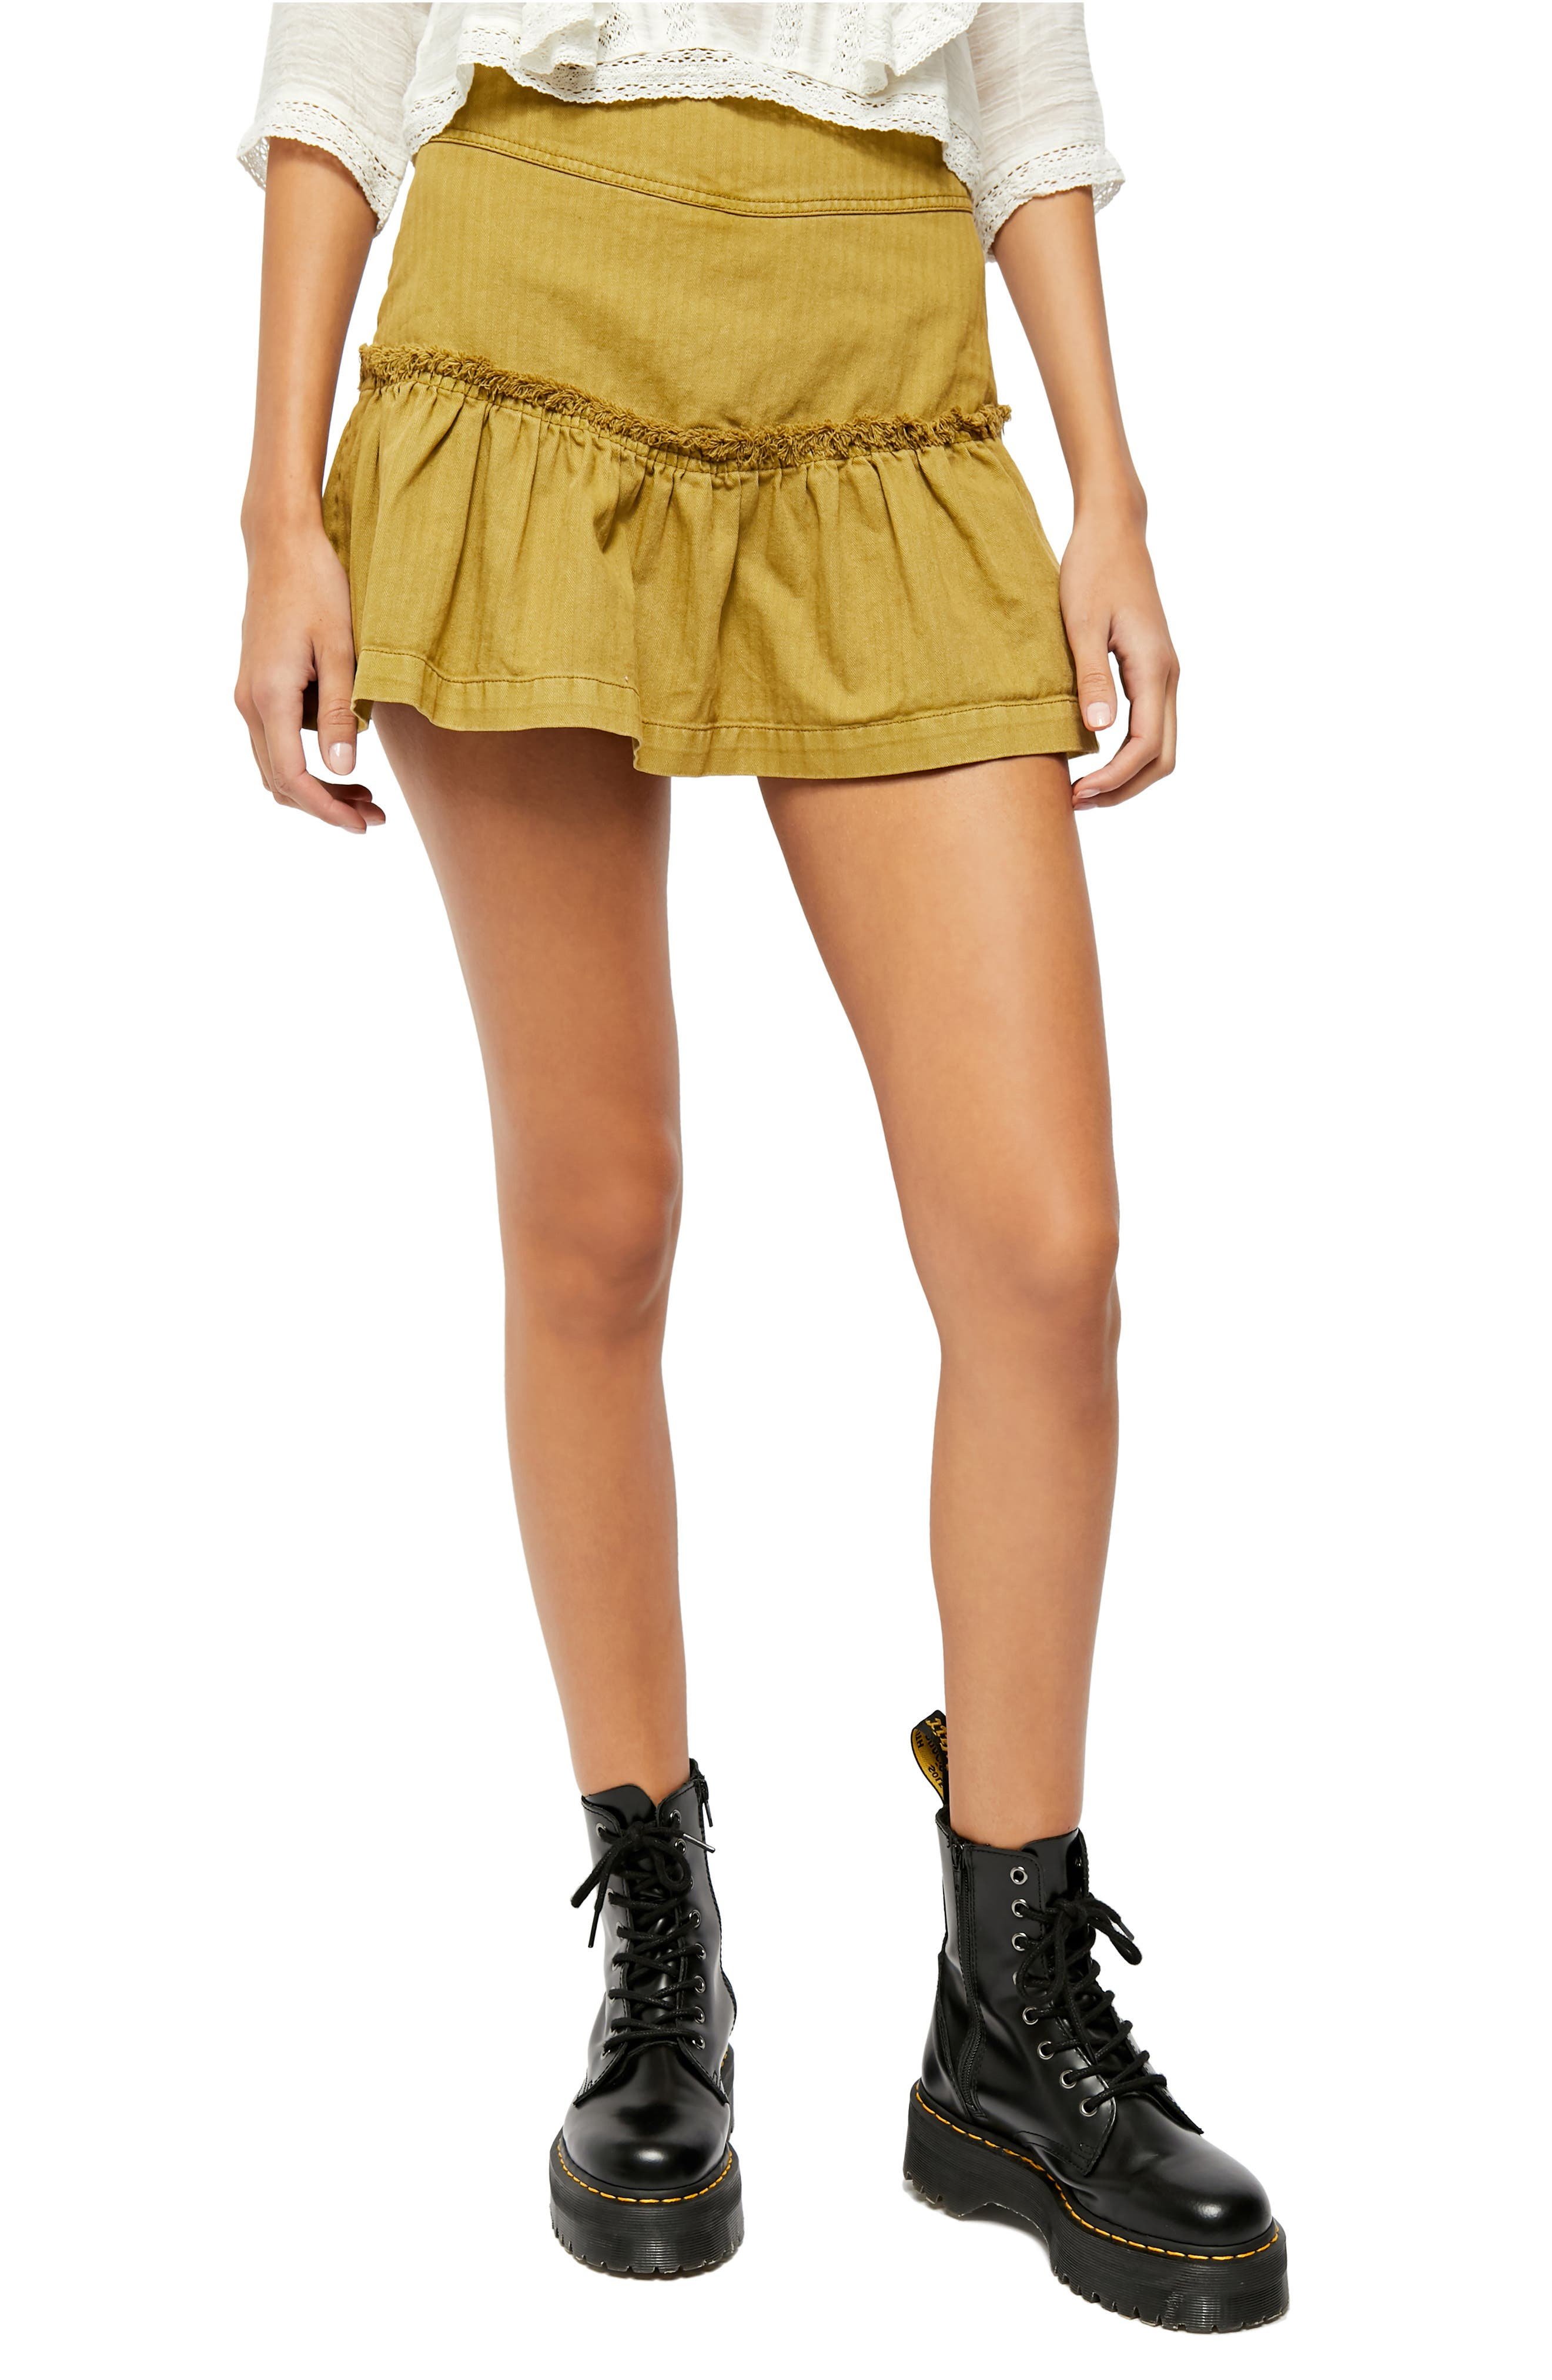 Image of Free People Positano Lace-Up Mini Skirt